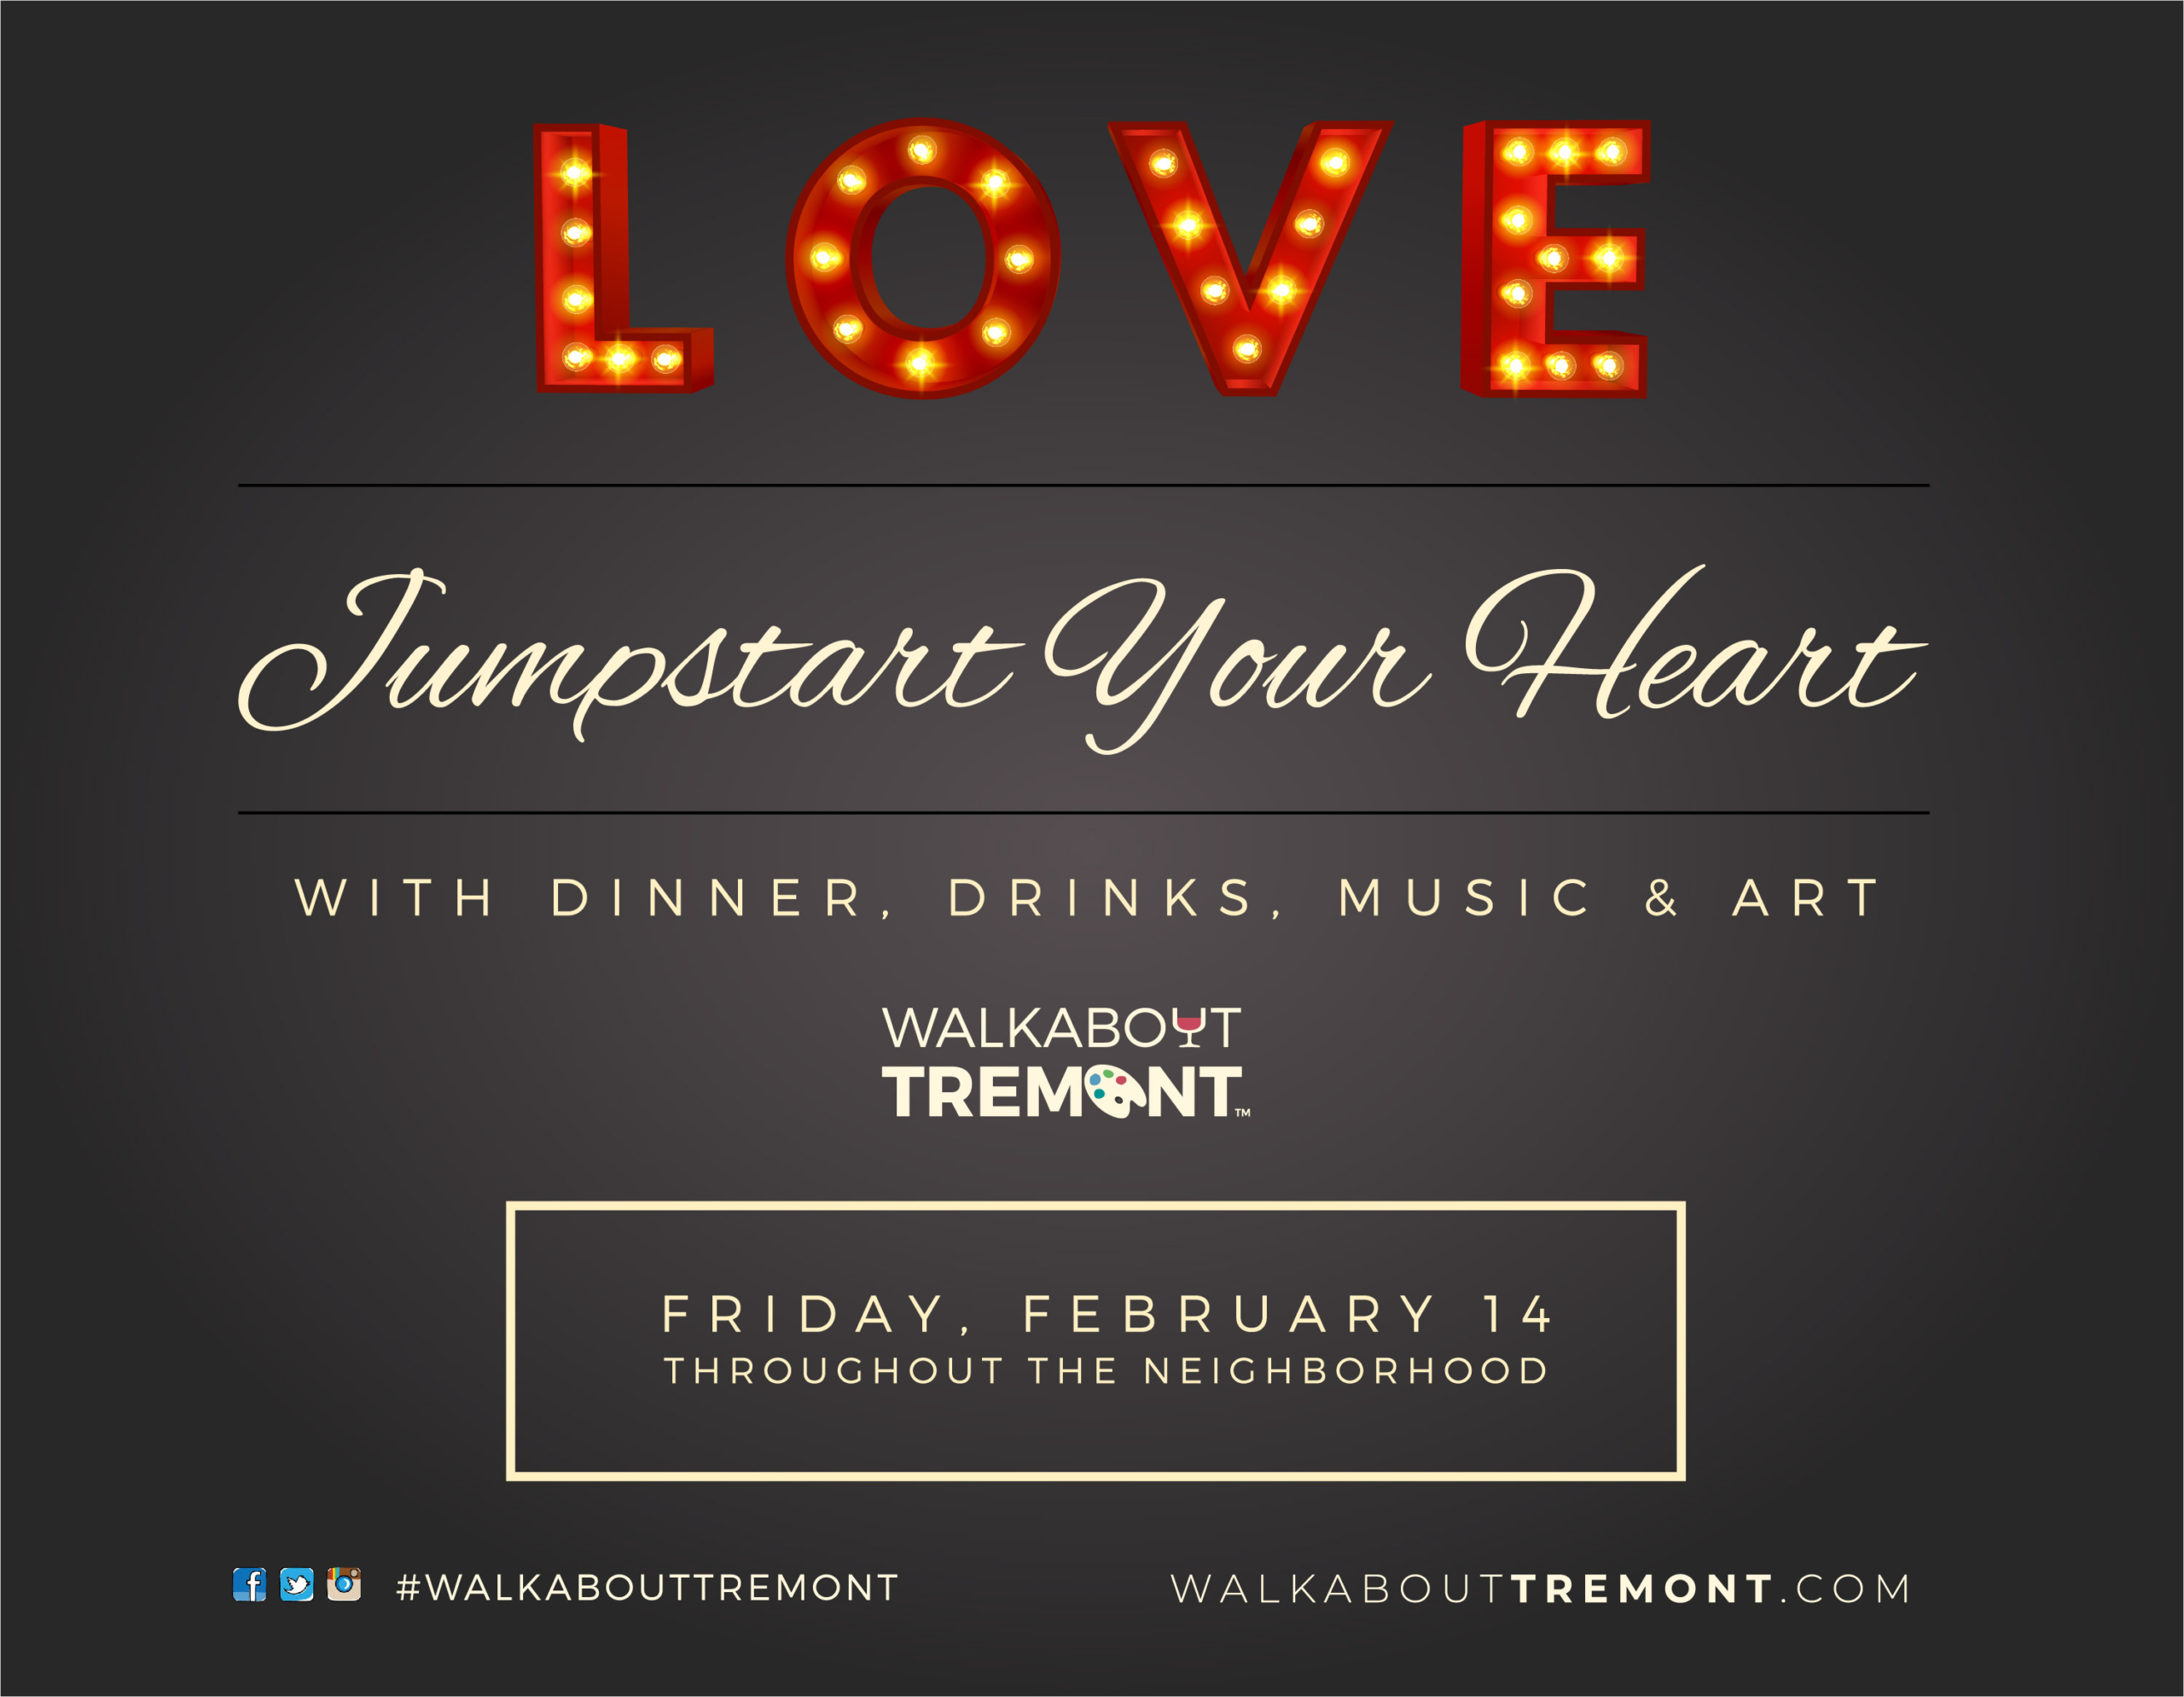 WILL YOU BE WALKABOUT TREMONT'S VALENTINE?